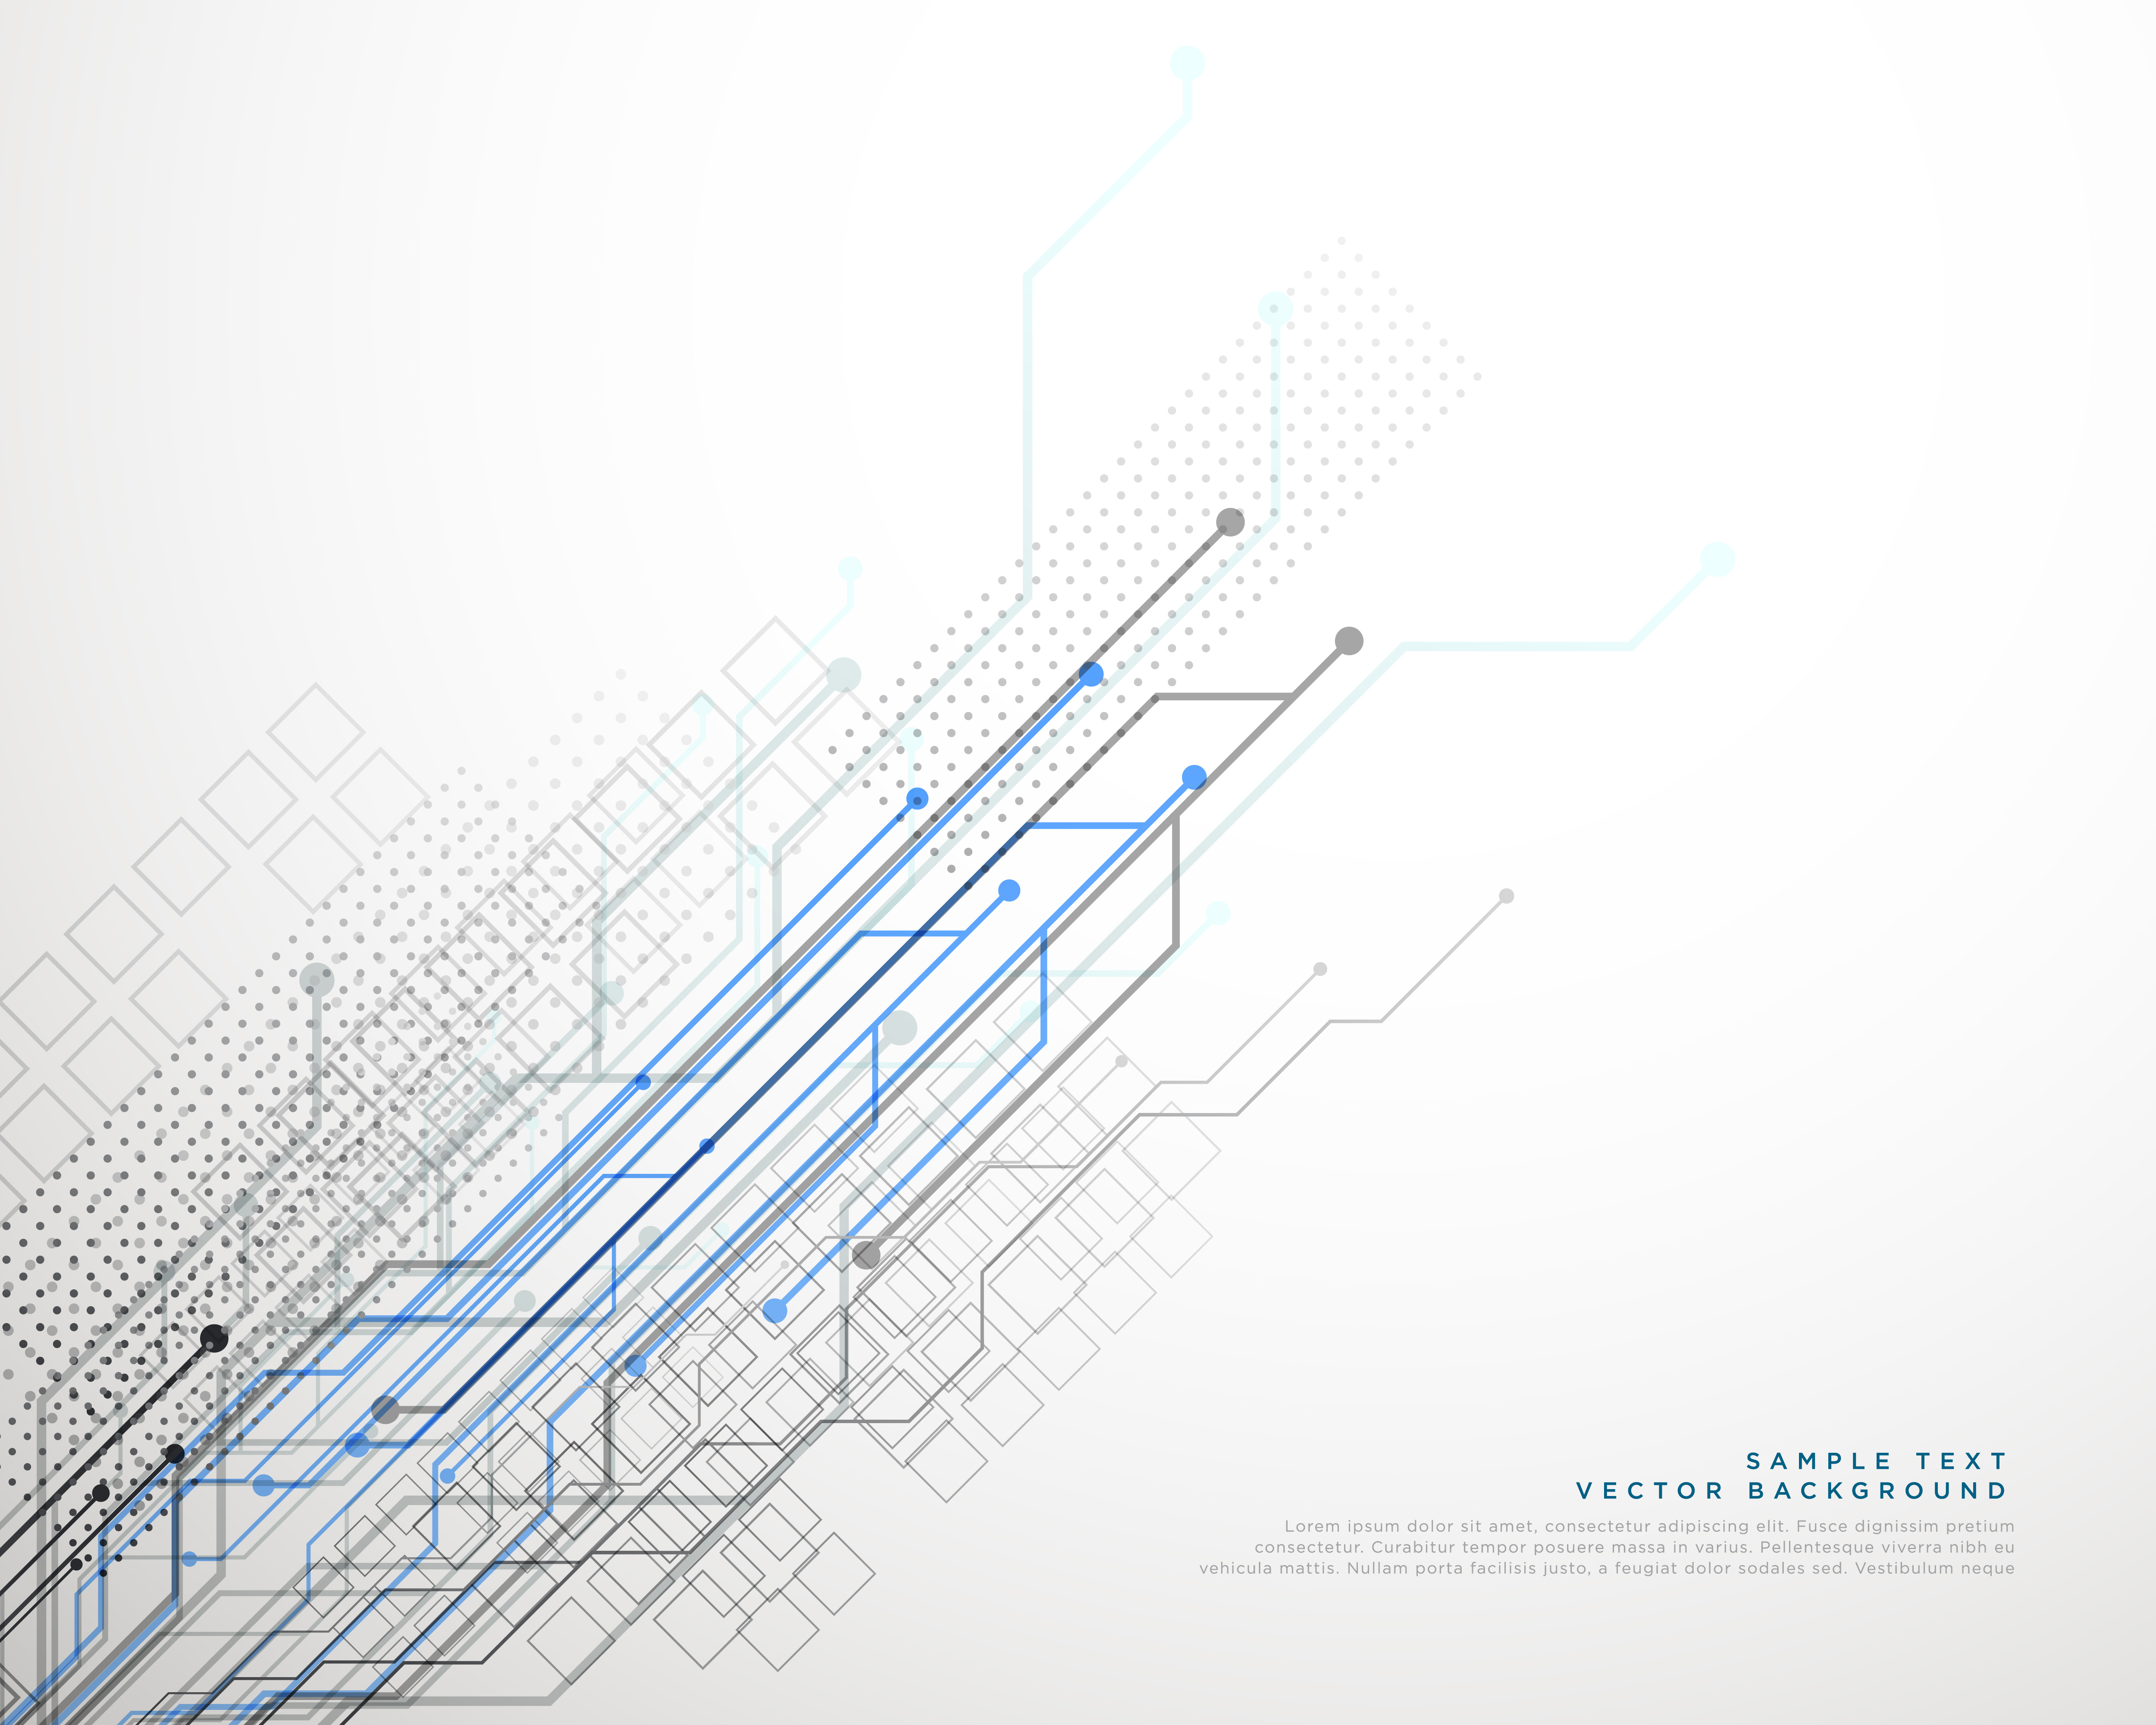 Vector Drawing Lines Examples : Technology network lines vector background download free